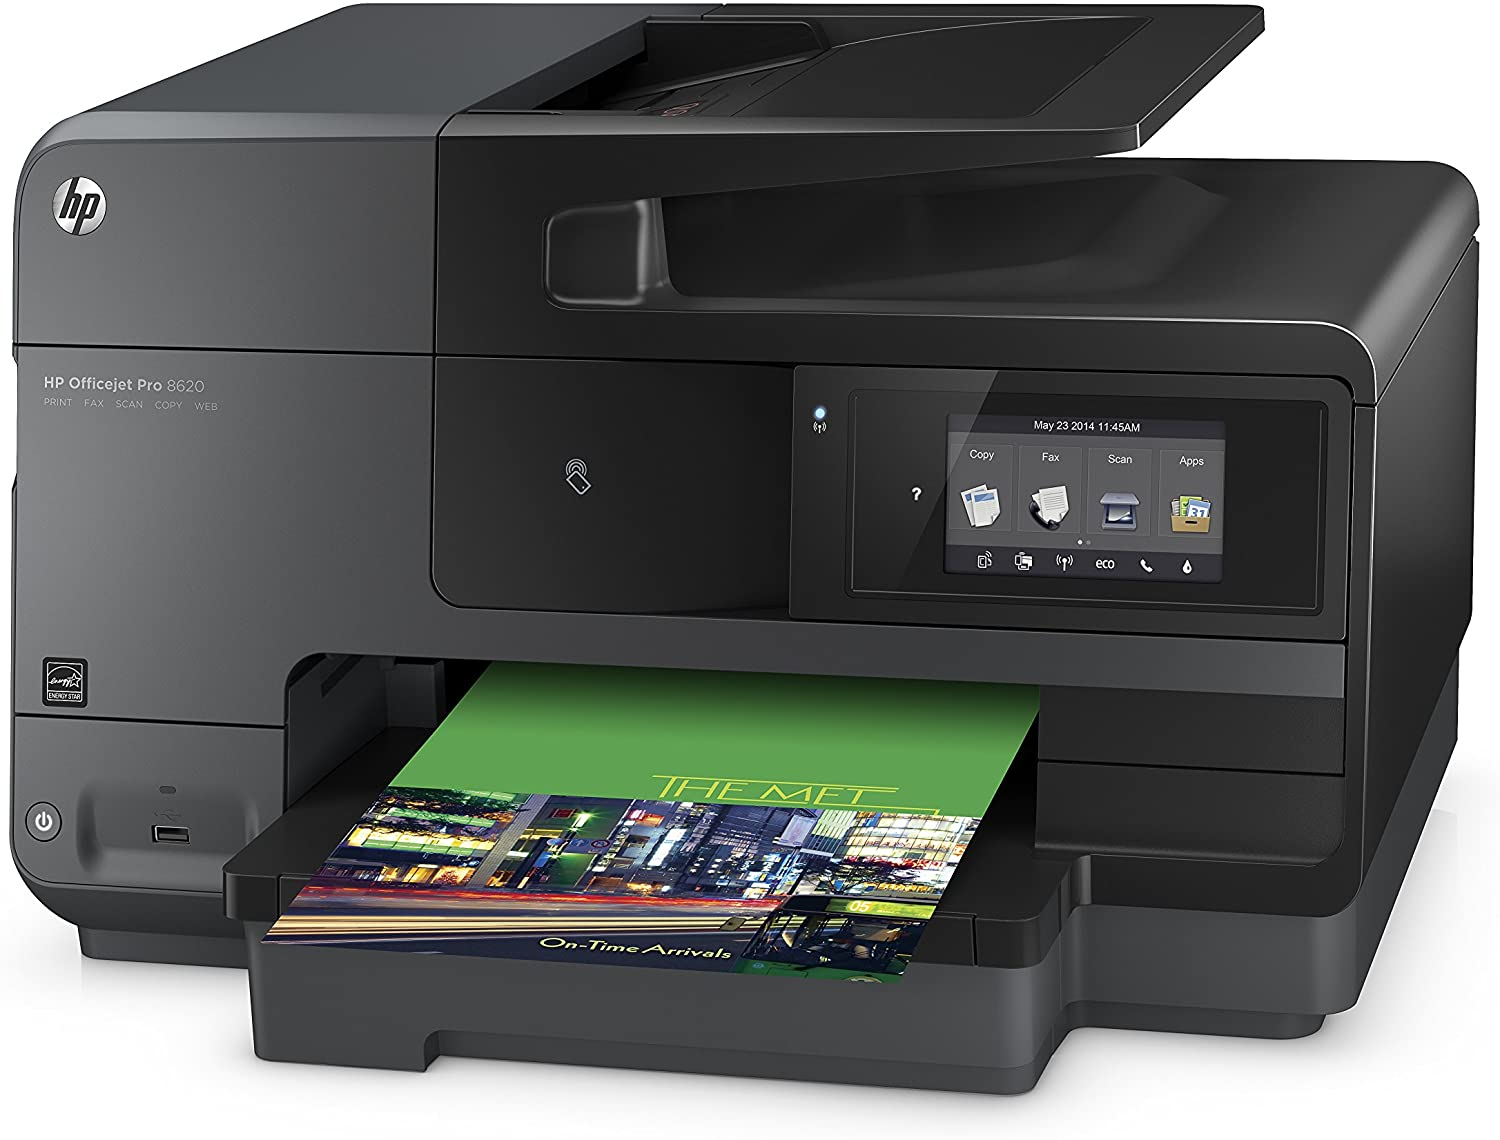 HP OfficeJet Pro 8620 All-in-One Wireless Printer with Mobile Printing, Instant Ink ready (A7F65A)